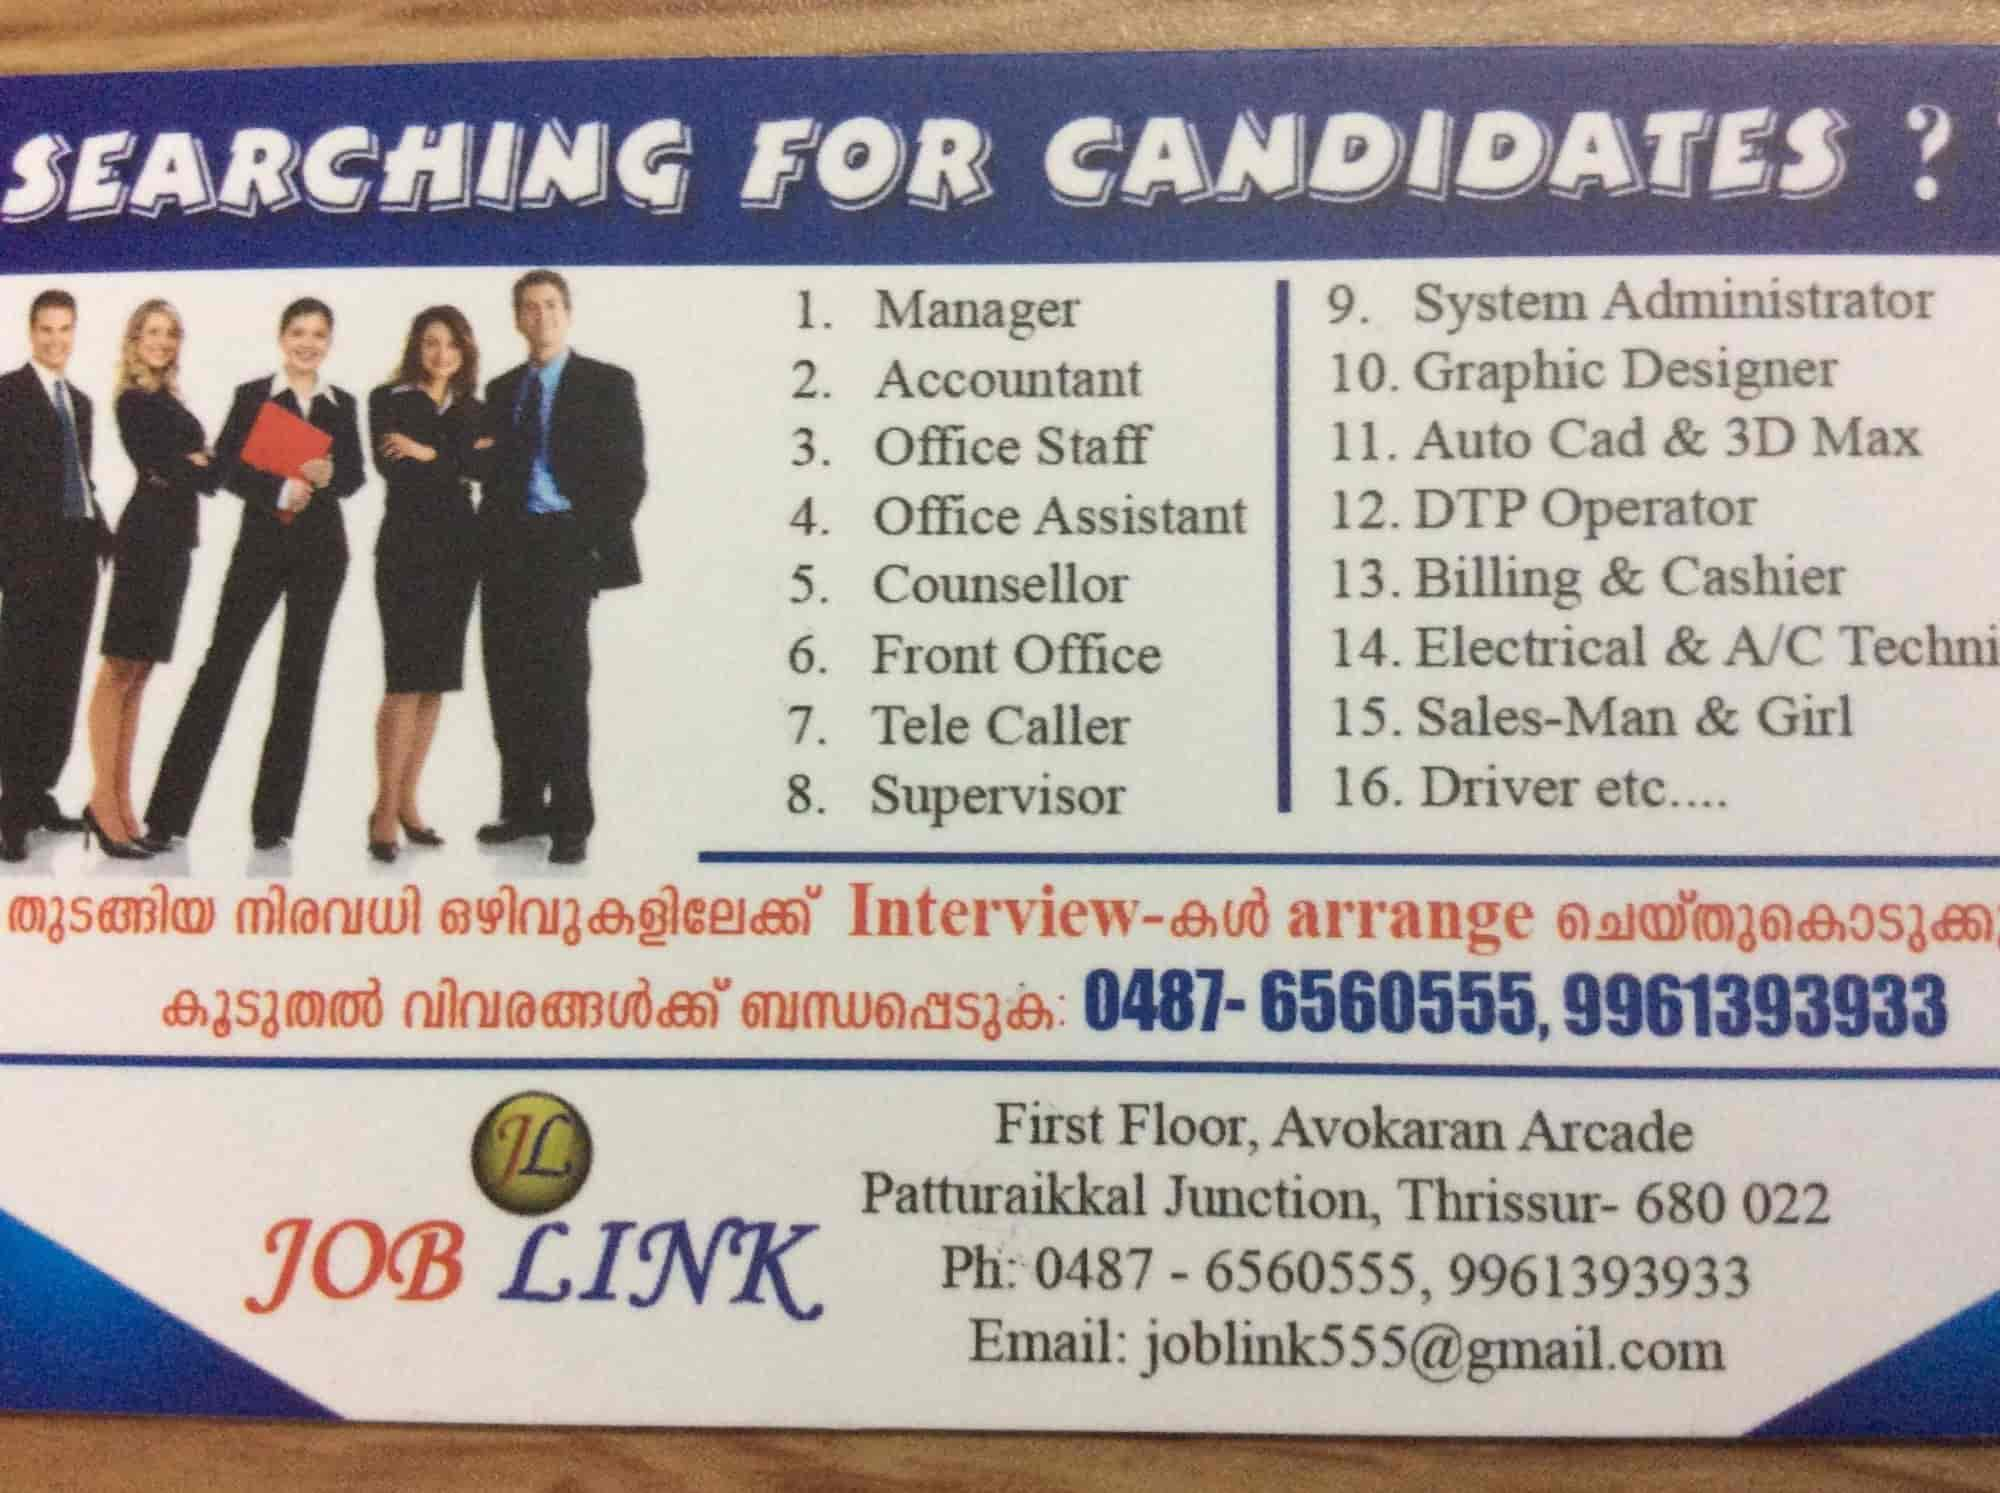 Joblink recruitment agency